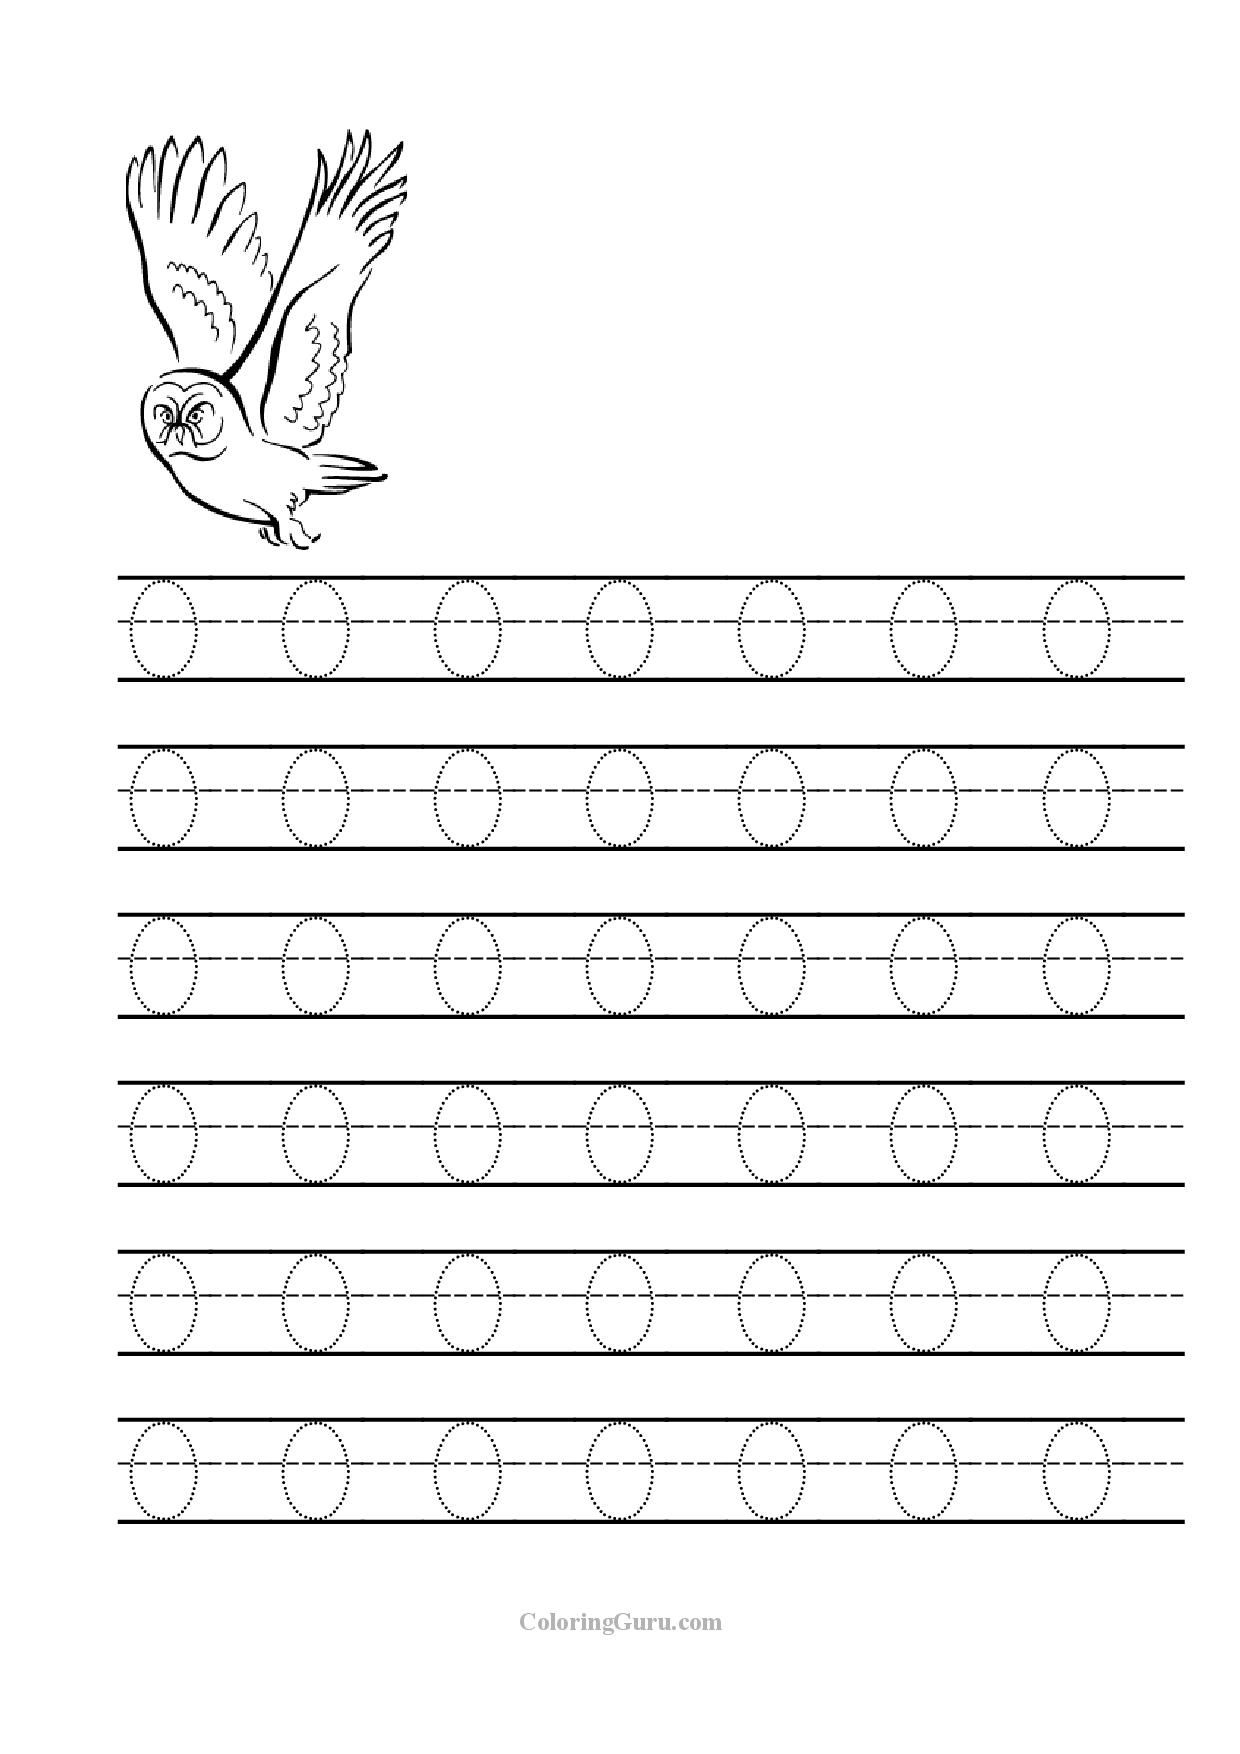 worksheet Letter O Worksheet 17 best images about letter o activities on pinterest kids games free and preschool activities